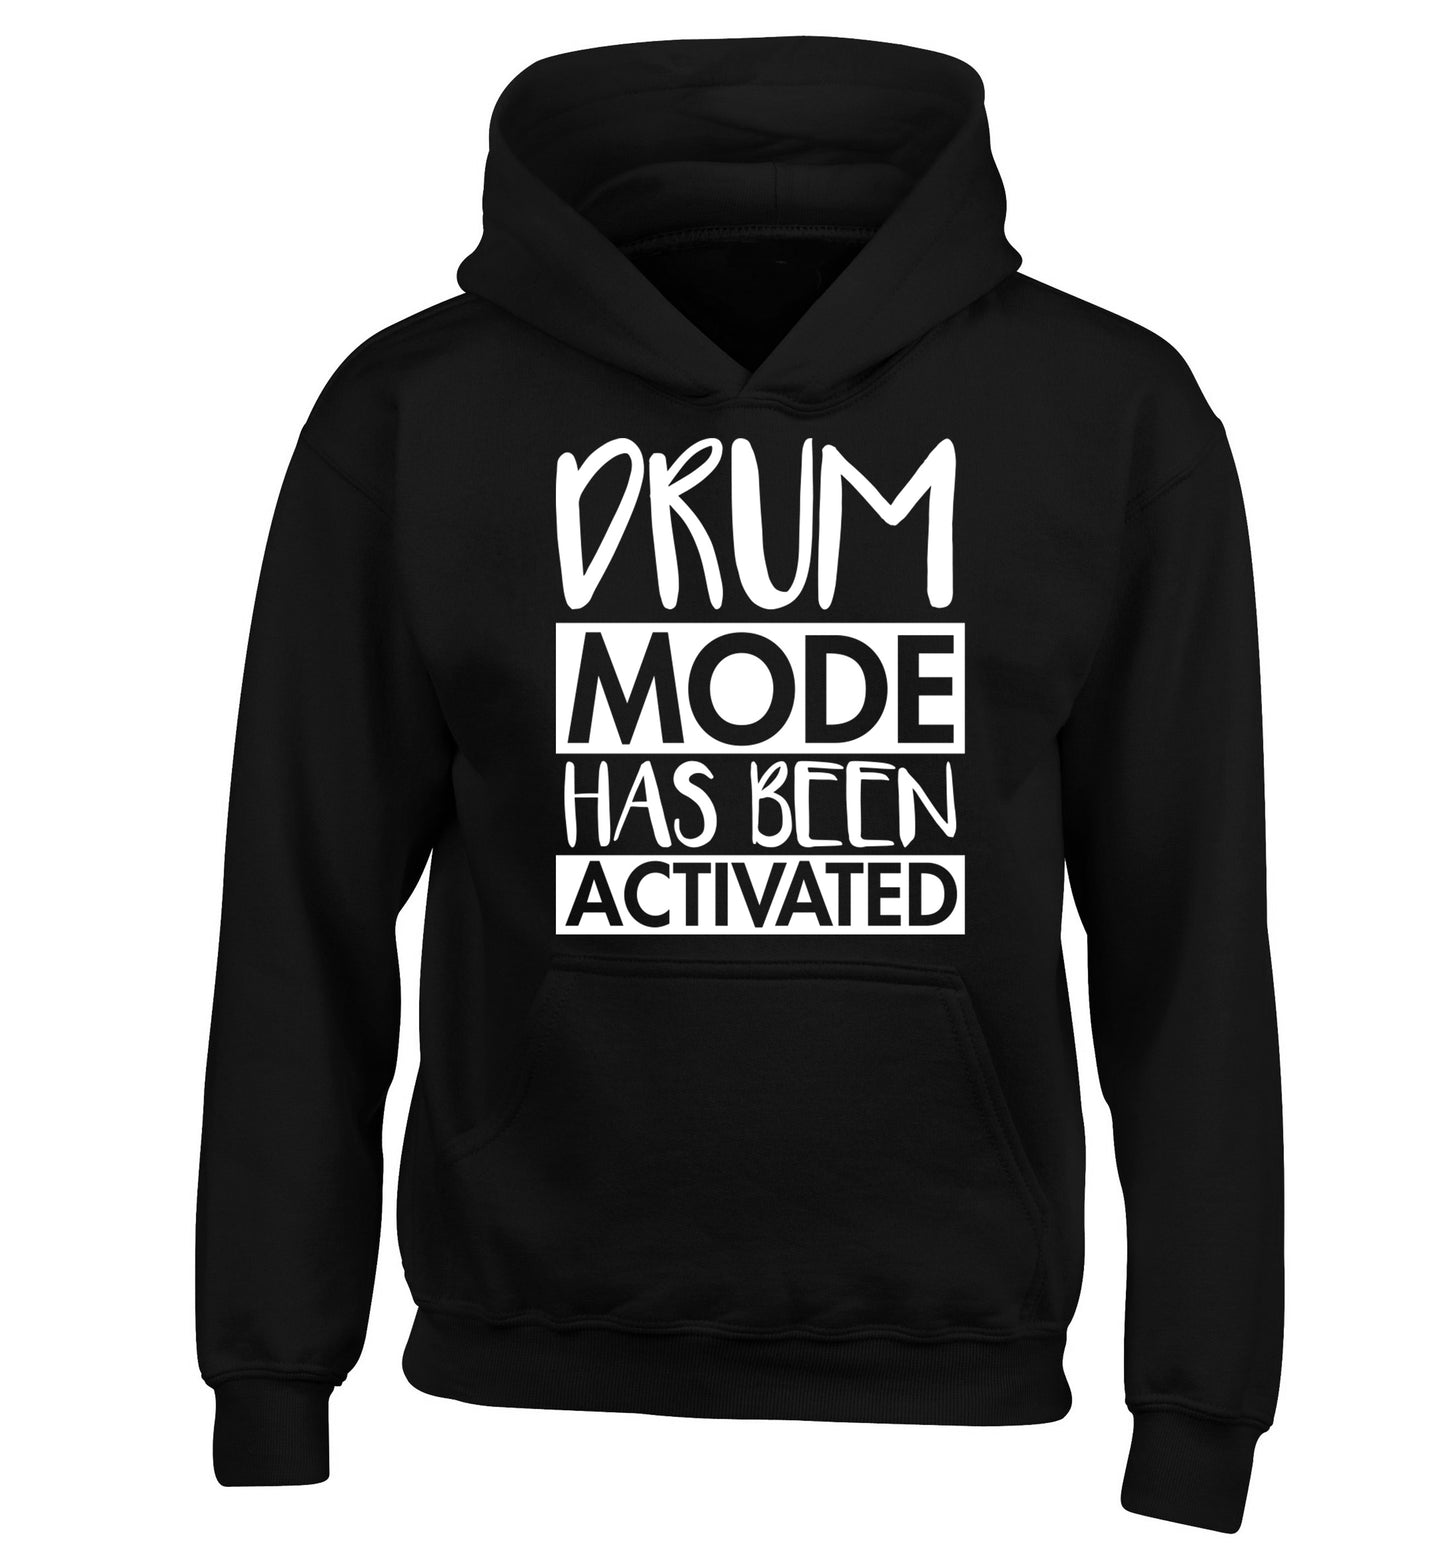 Drum mode activated children's black hoodie 12-14 Years